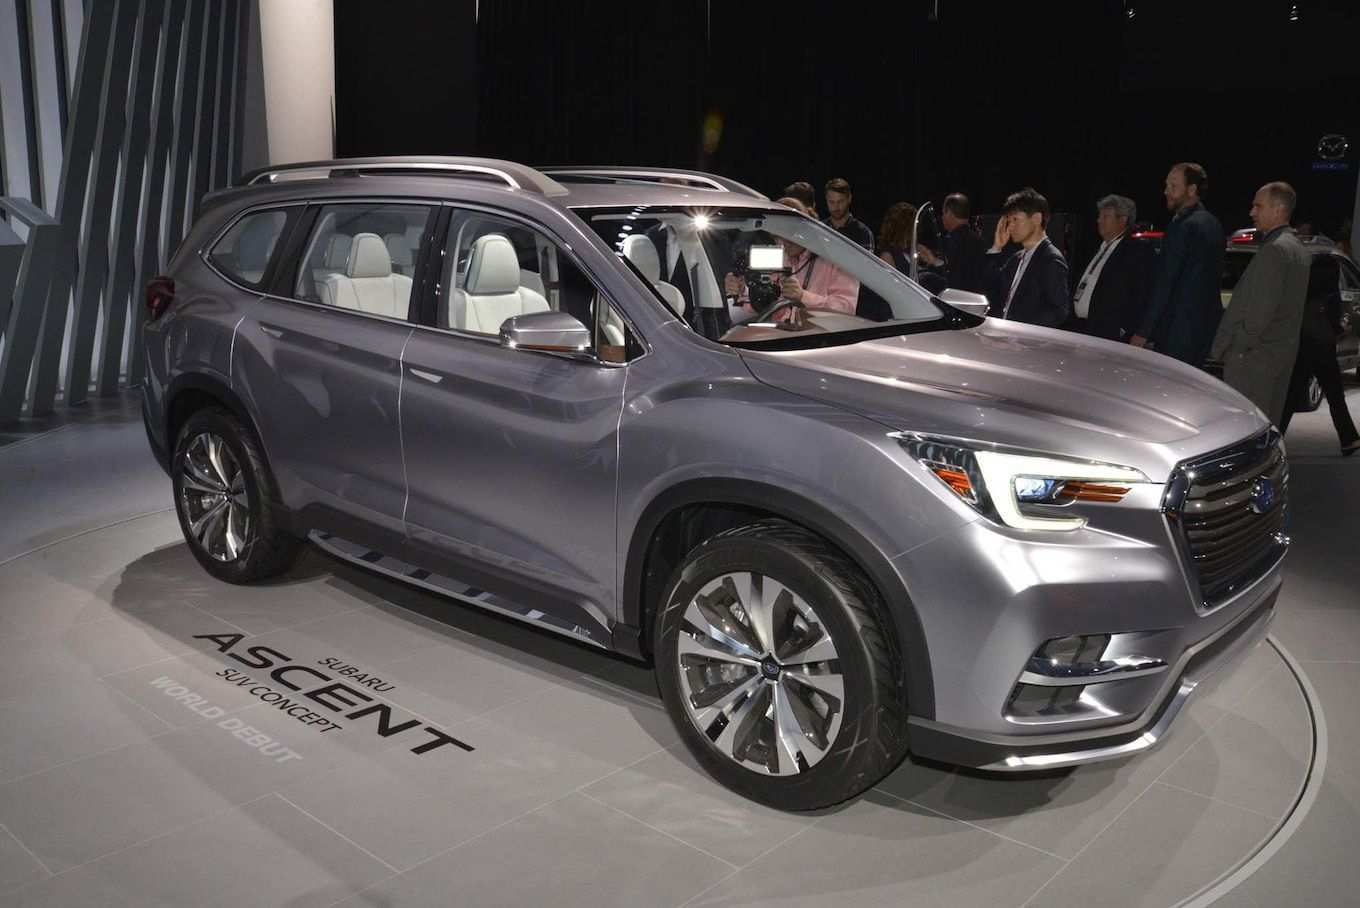 93 Best Review 2020 Subaru Ascent Exterior Picture with 2020 Subaru Ascent Exterior